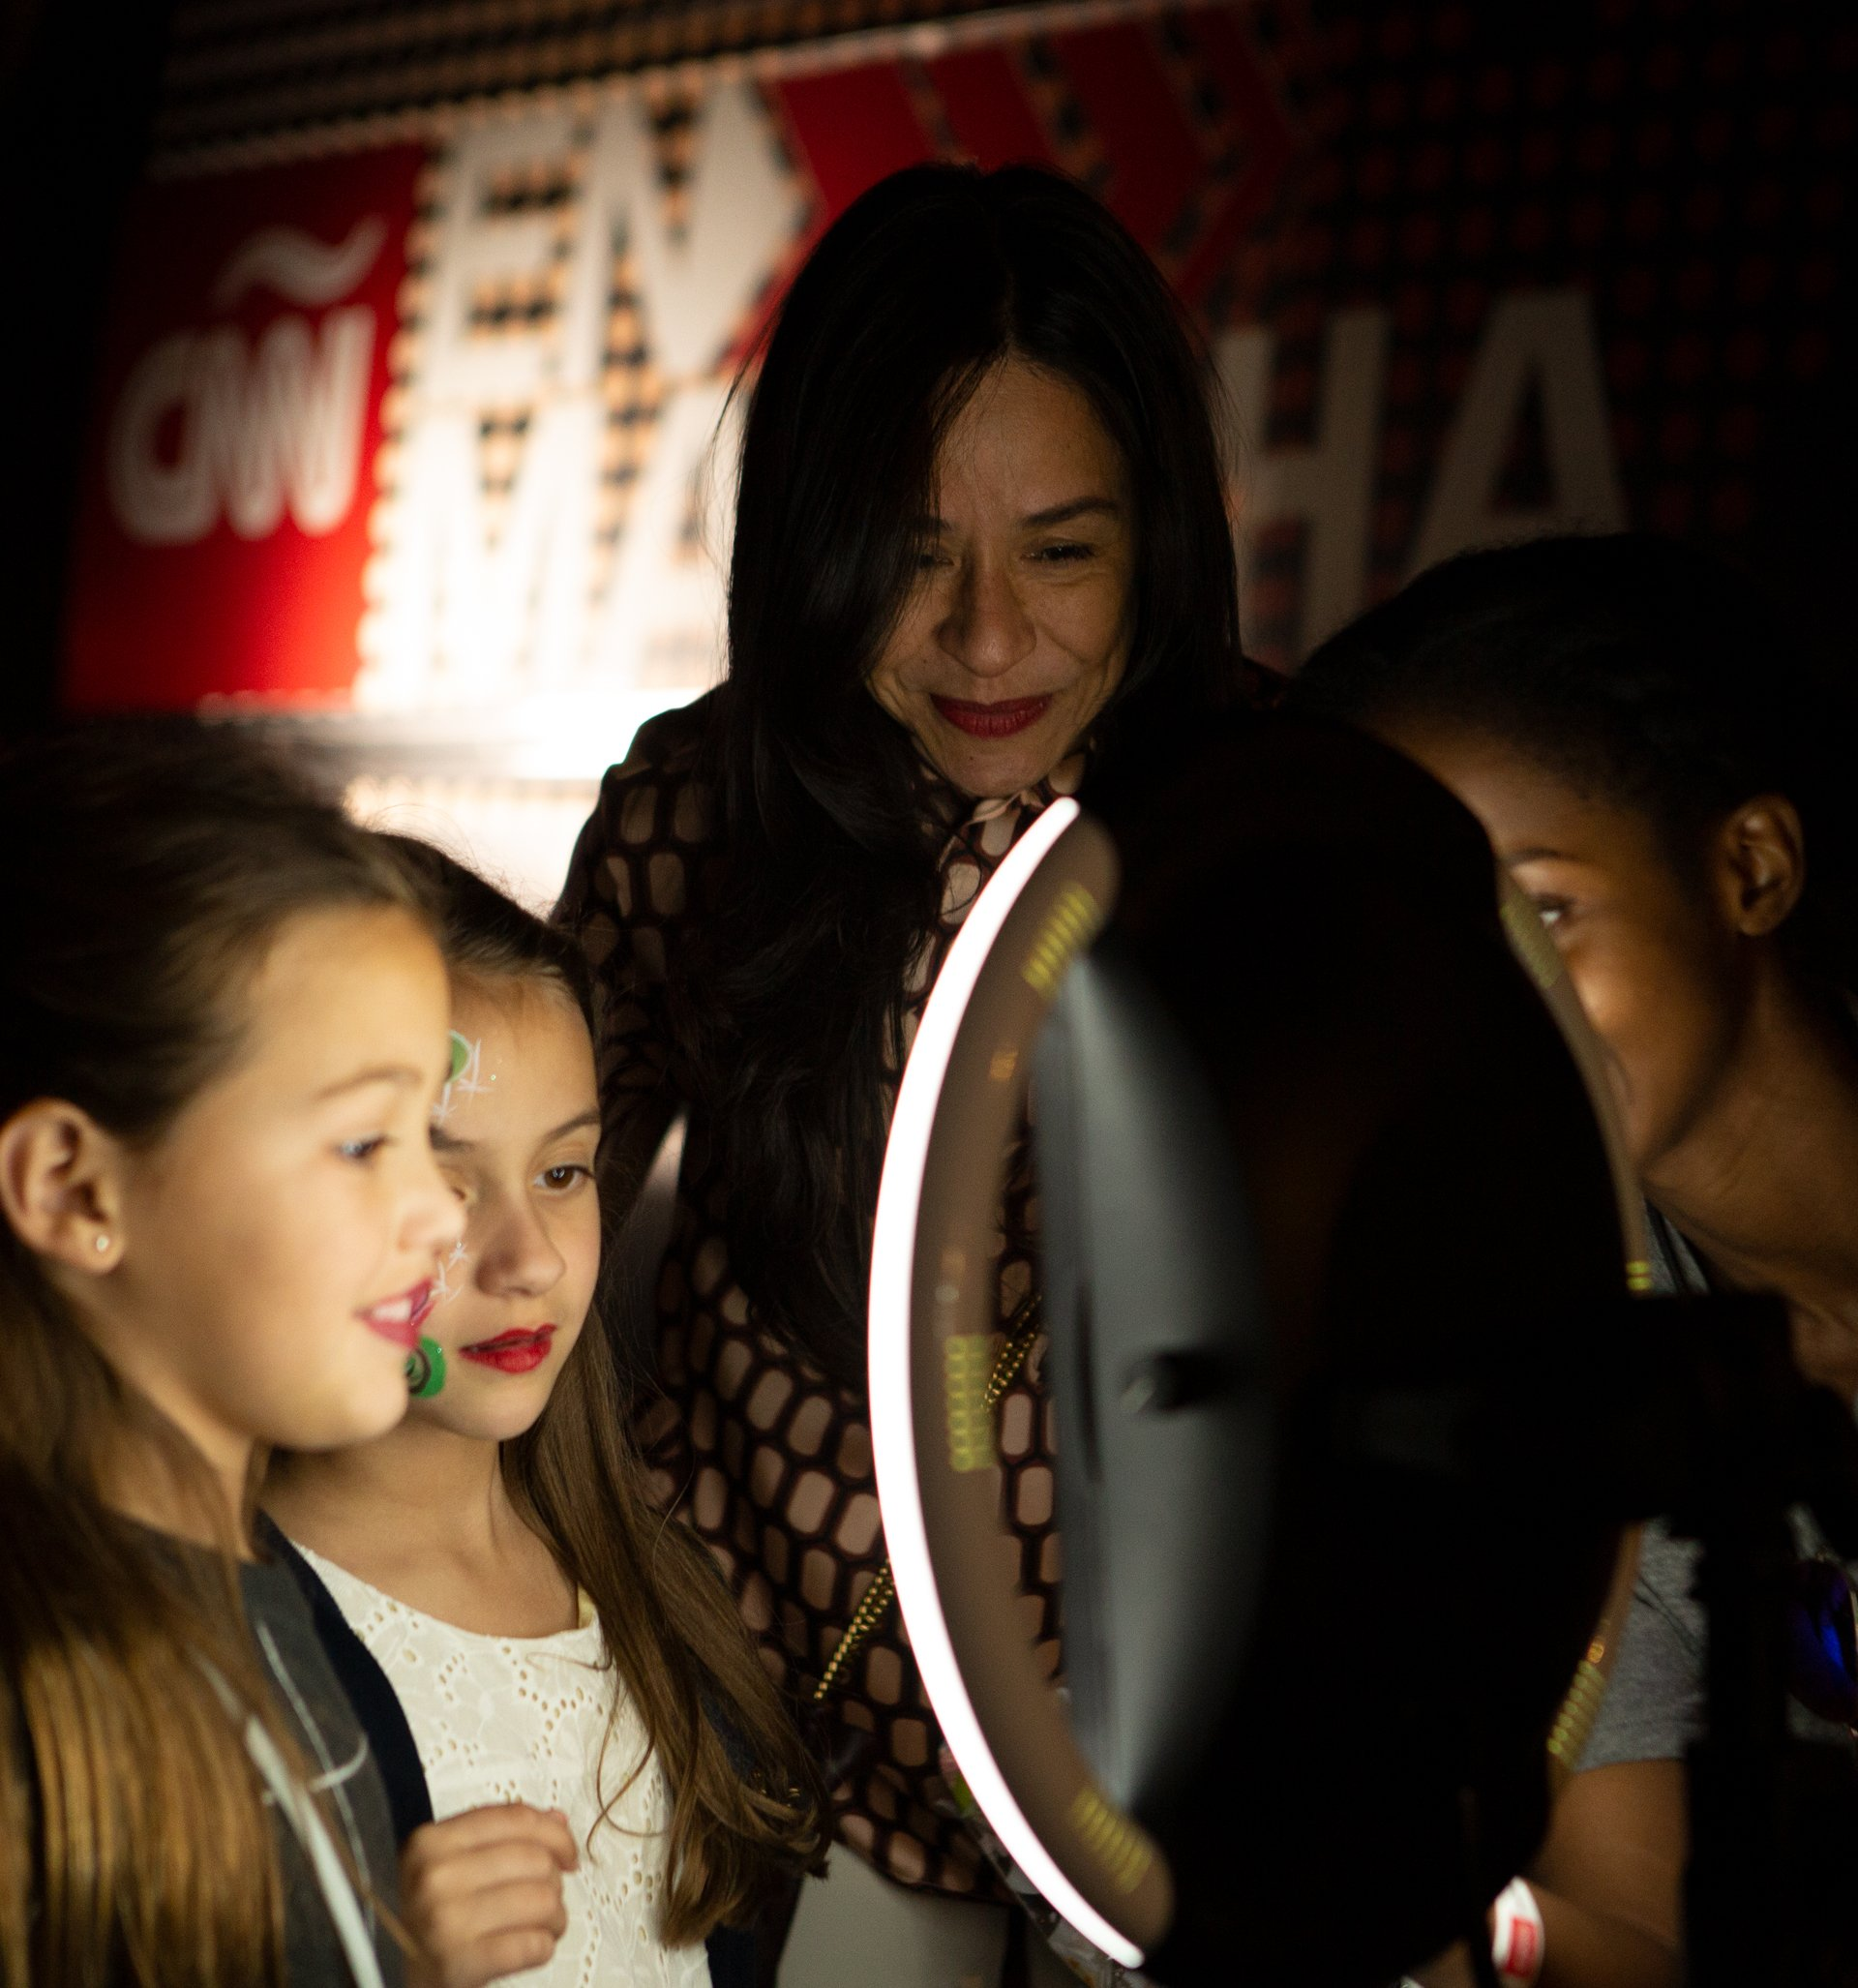 Young girls take a picture with the CNNE Twitter Mirror while mom is watching.